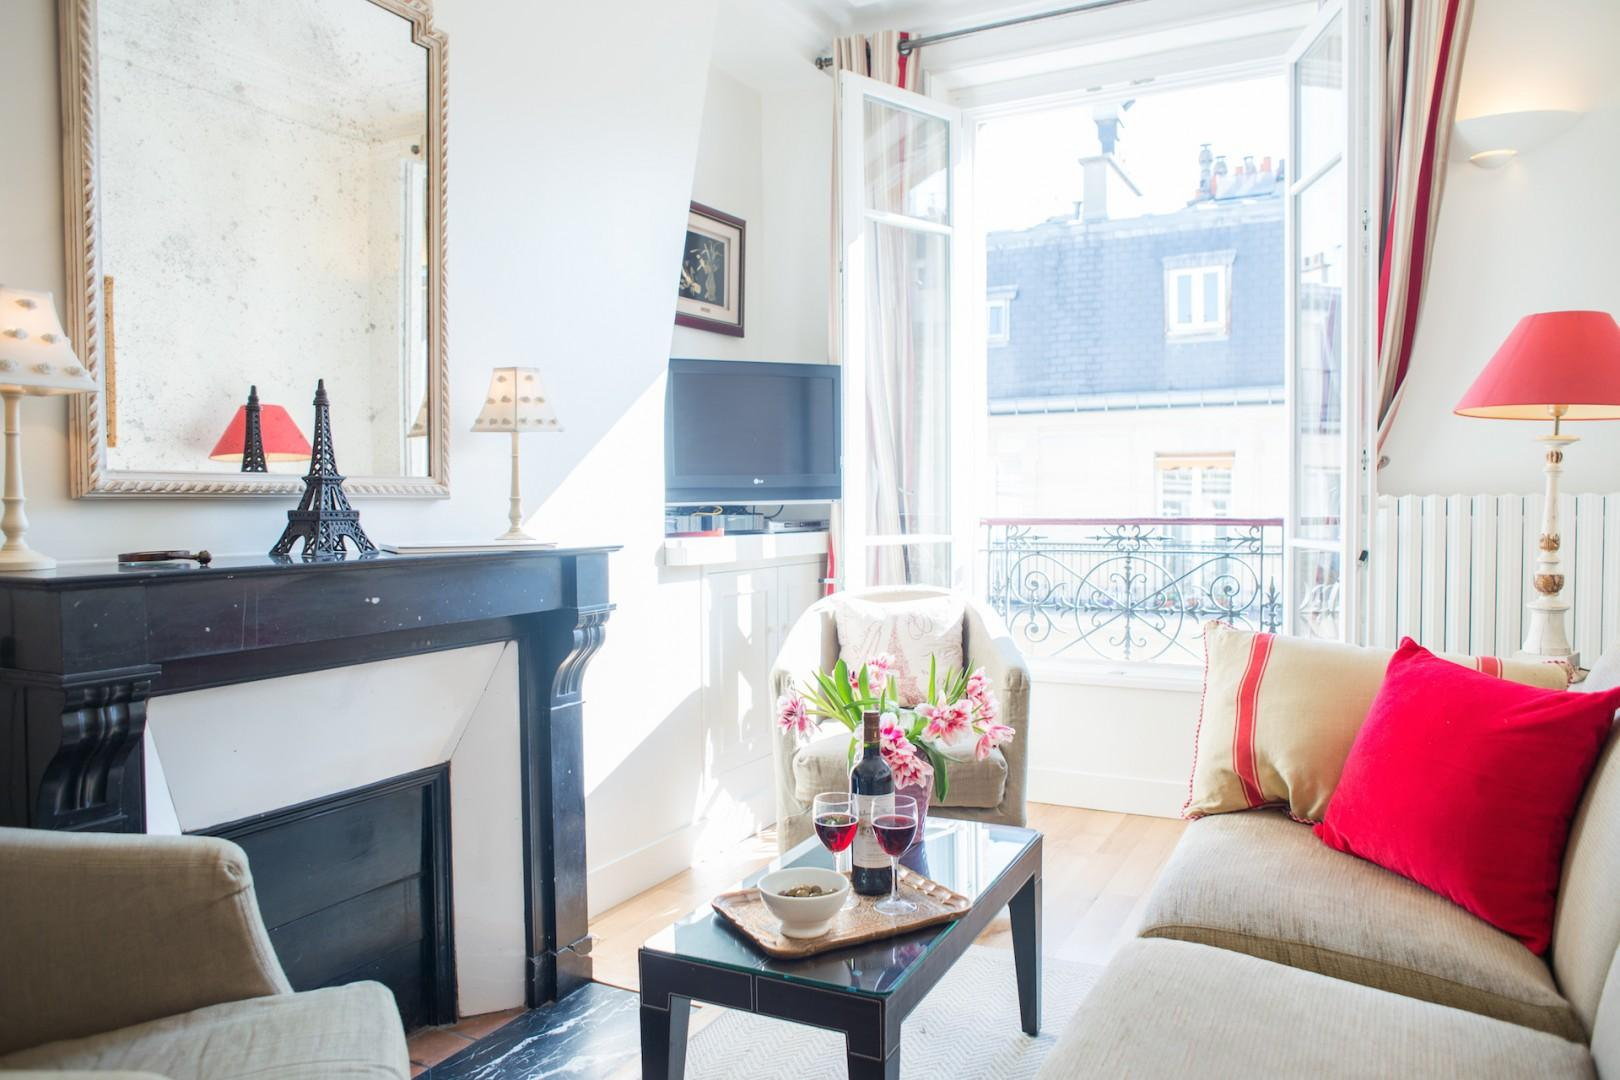 Enjoy the delightfully sunny space in the heart of Paris.